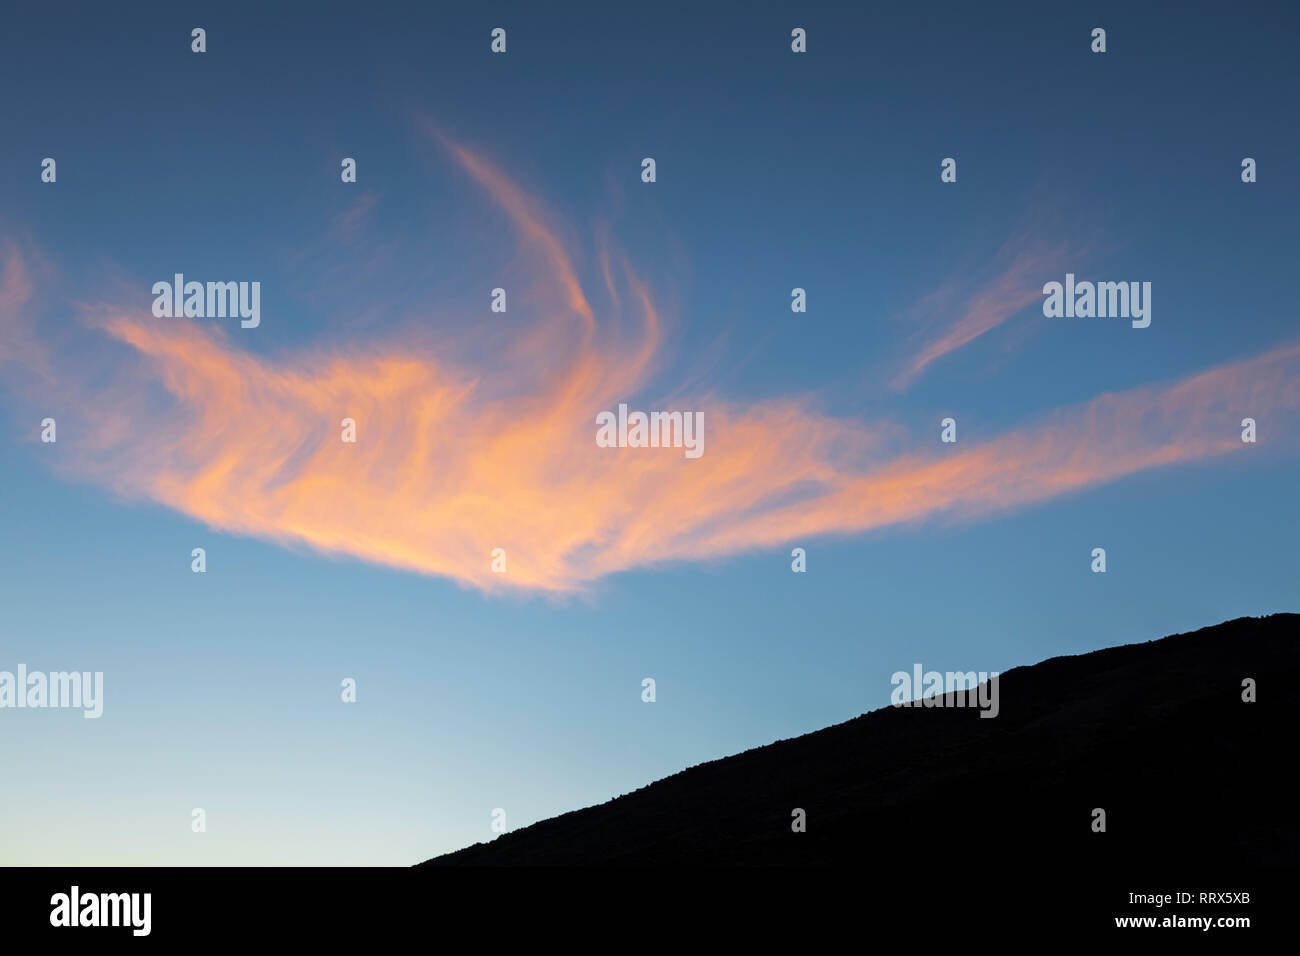 Wispy cloud lit orange by the setting sun in the Las Canadas del Teide national park, Tenerife, Canary Islands, Spain - Stock Image